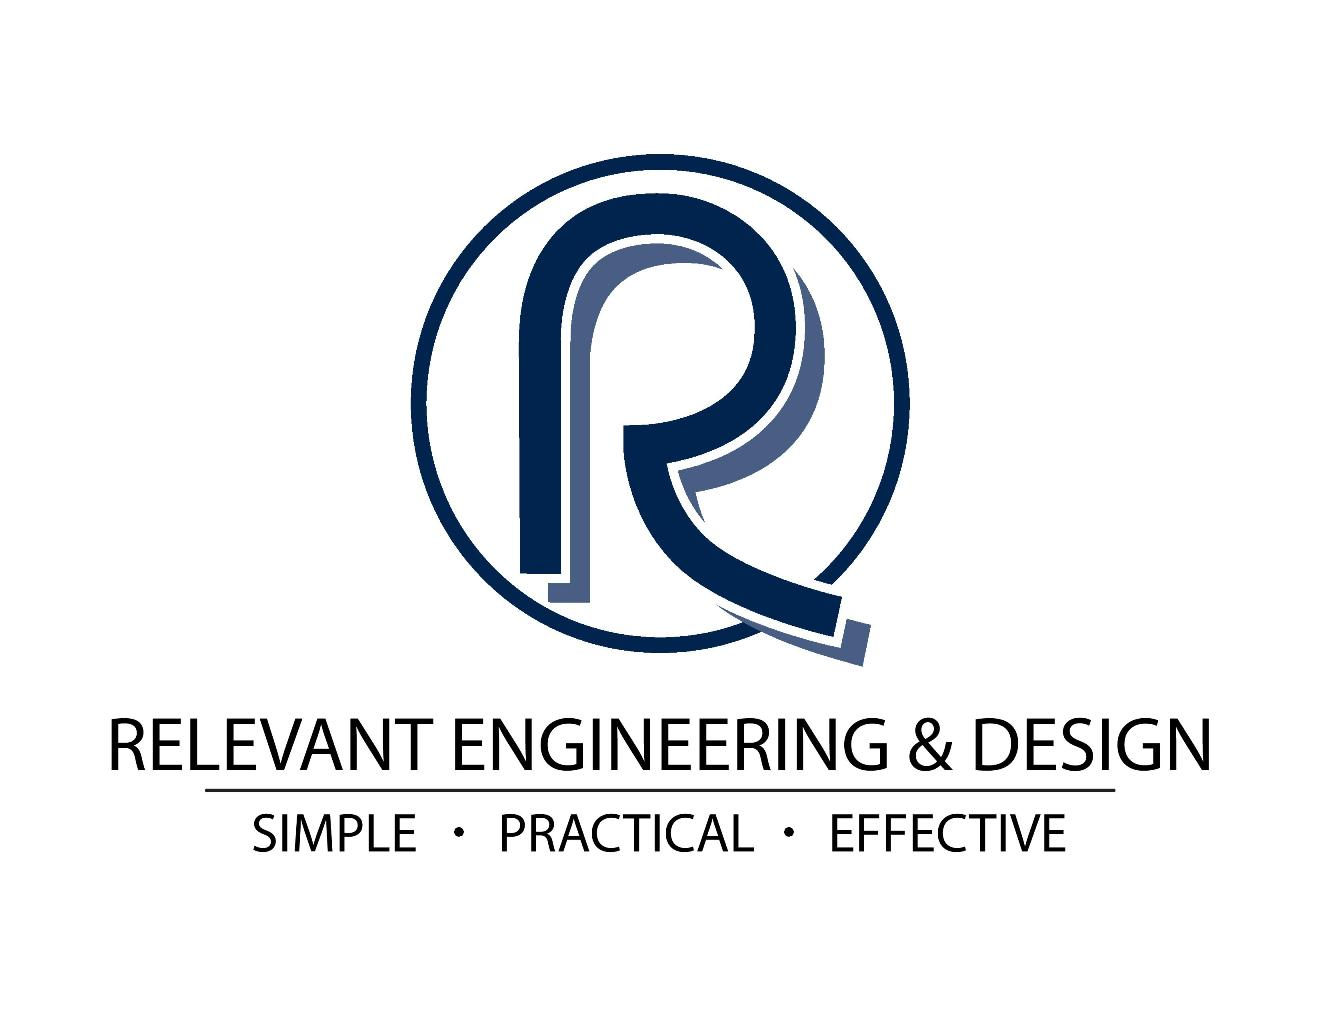 Relevant Engineering & Design primary image